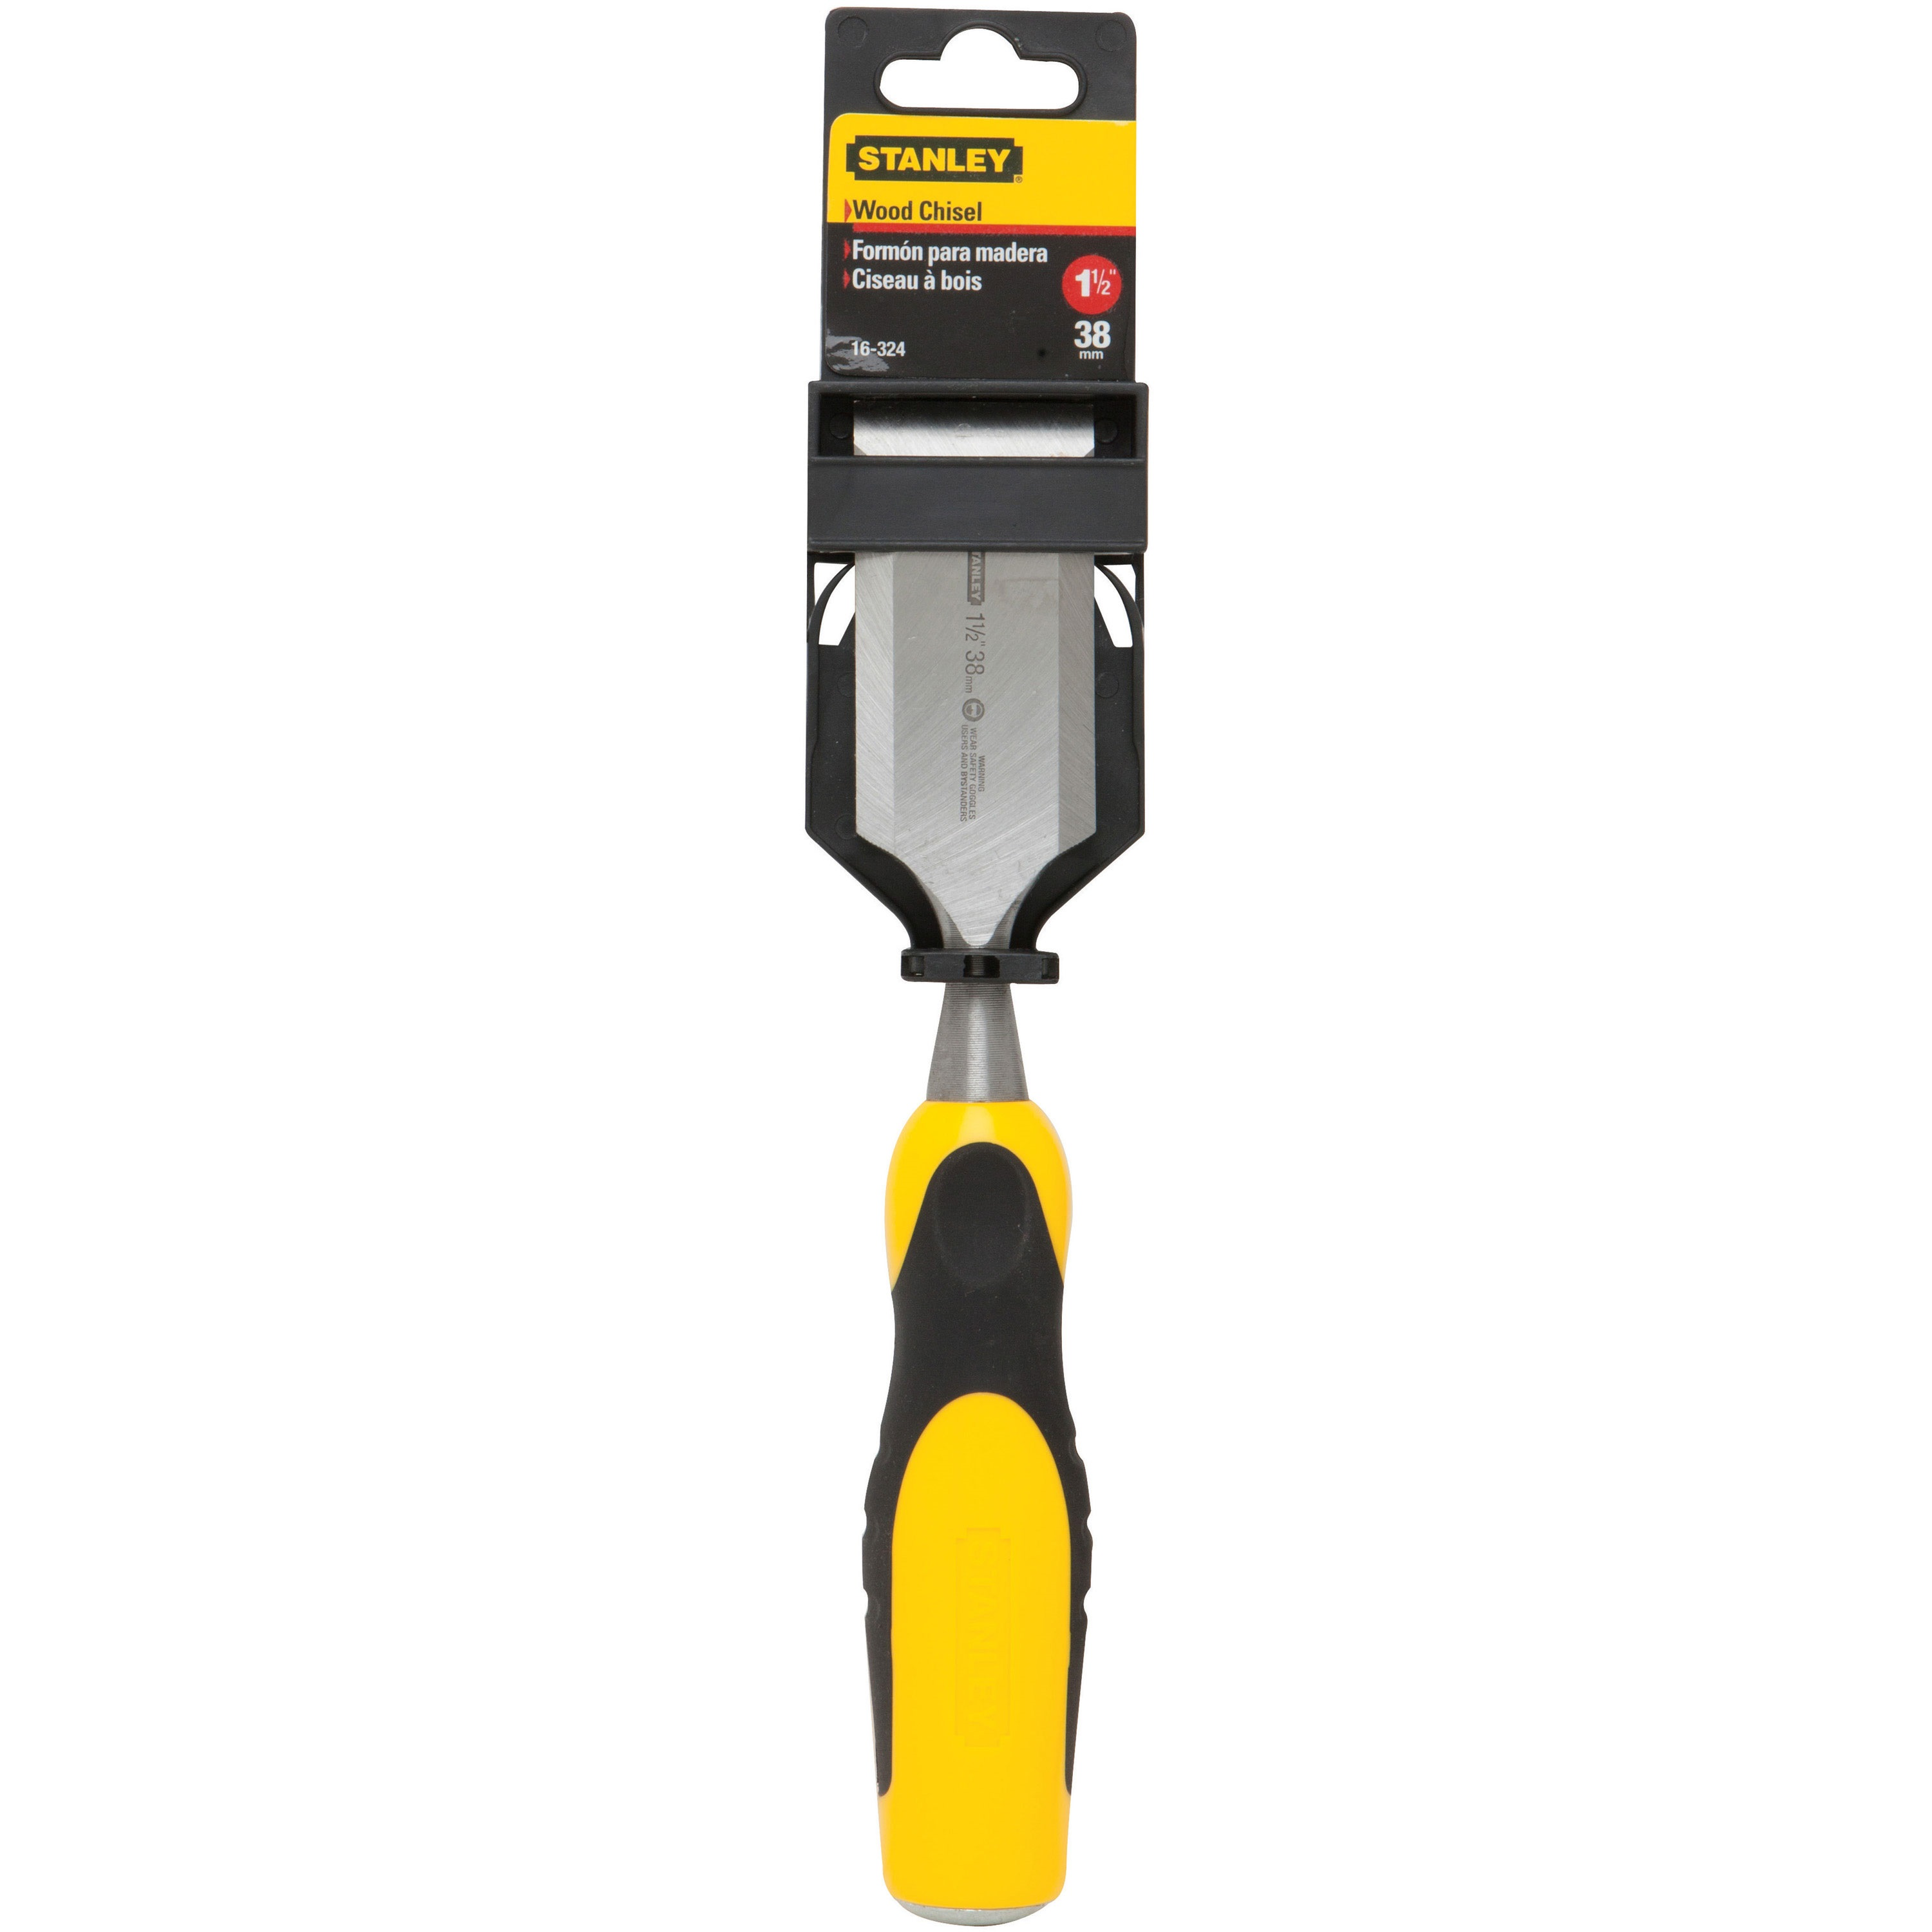 Stanley Tools - 112 in Wood Chisel - 16-324